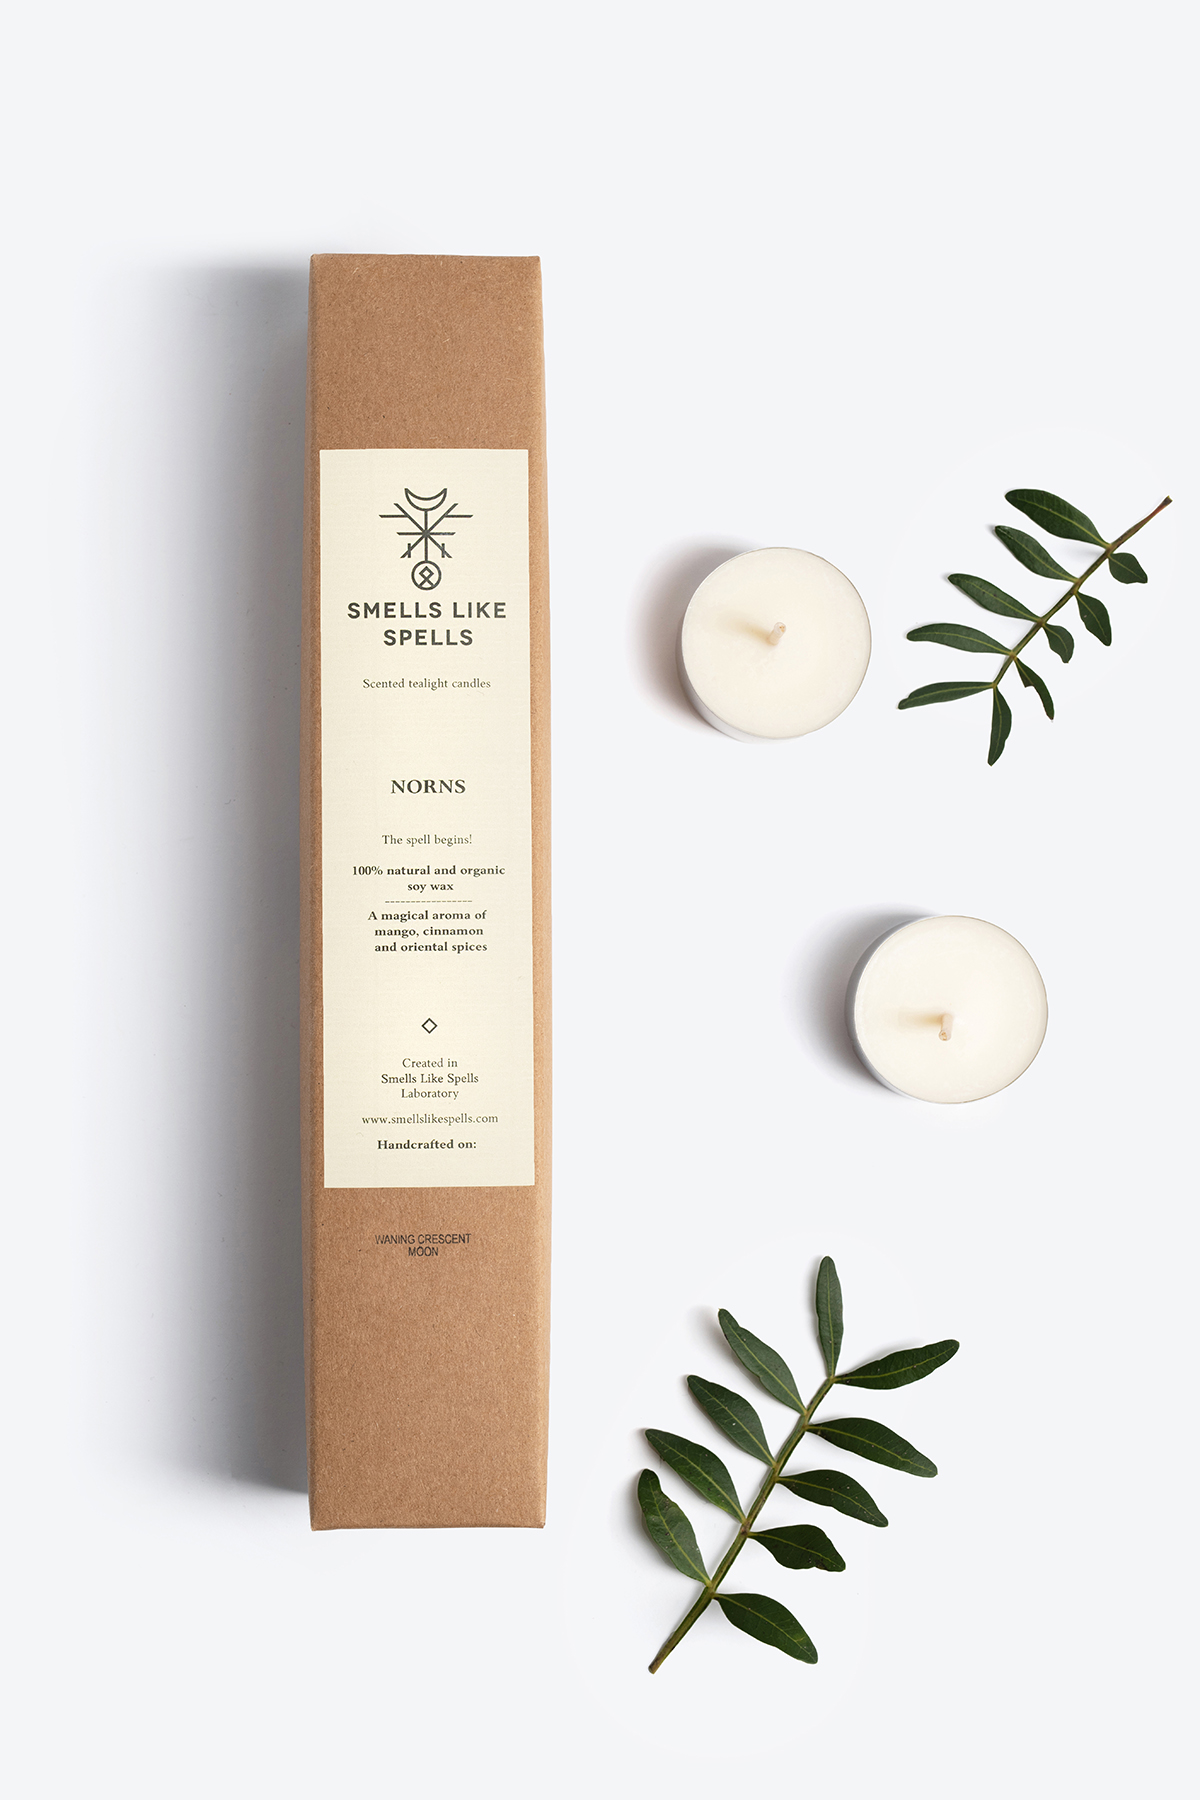 Scented tealight candles NORNS